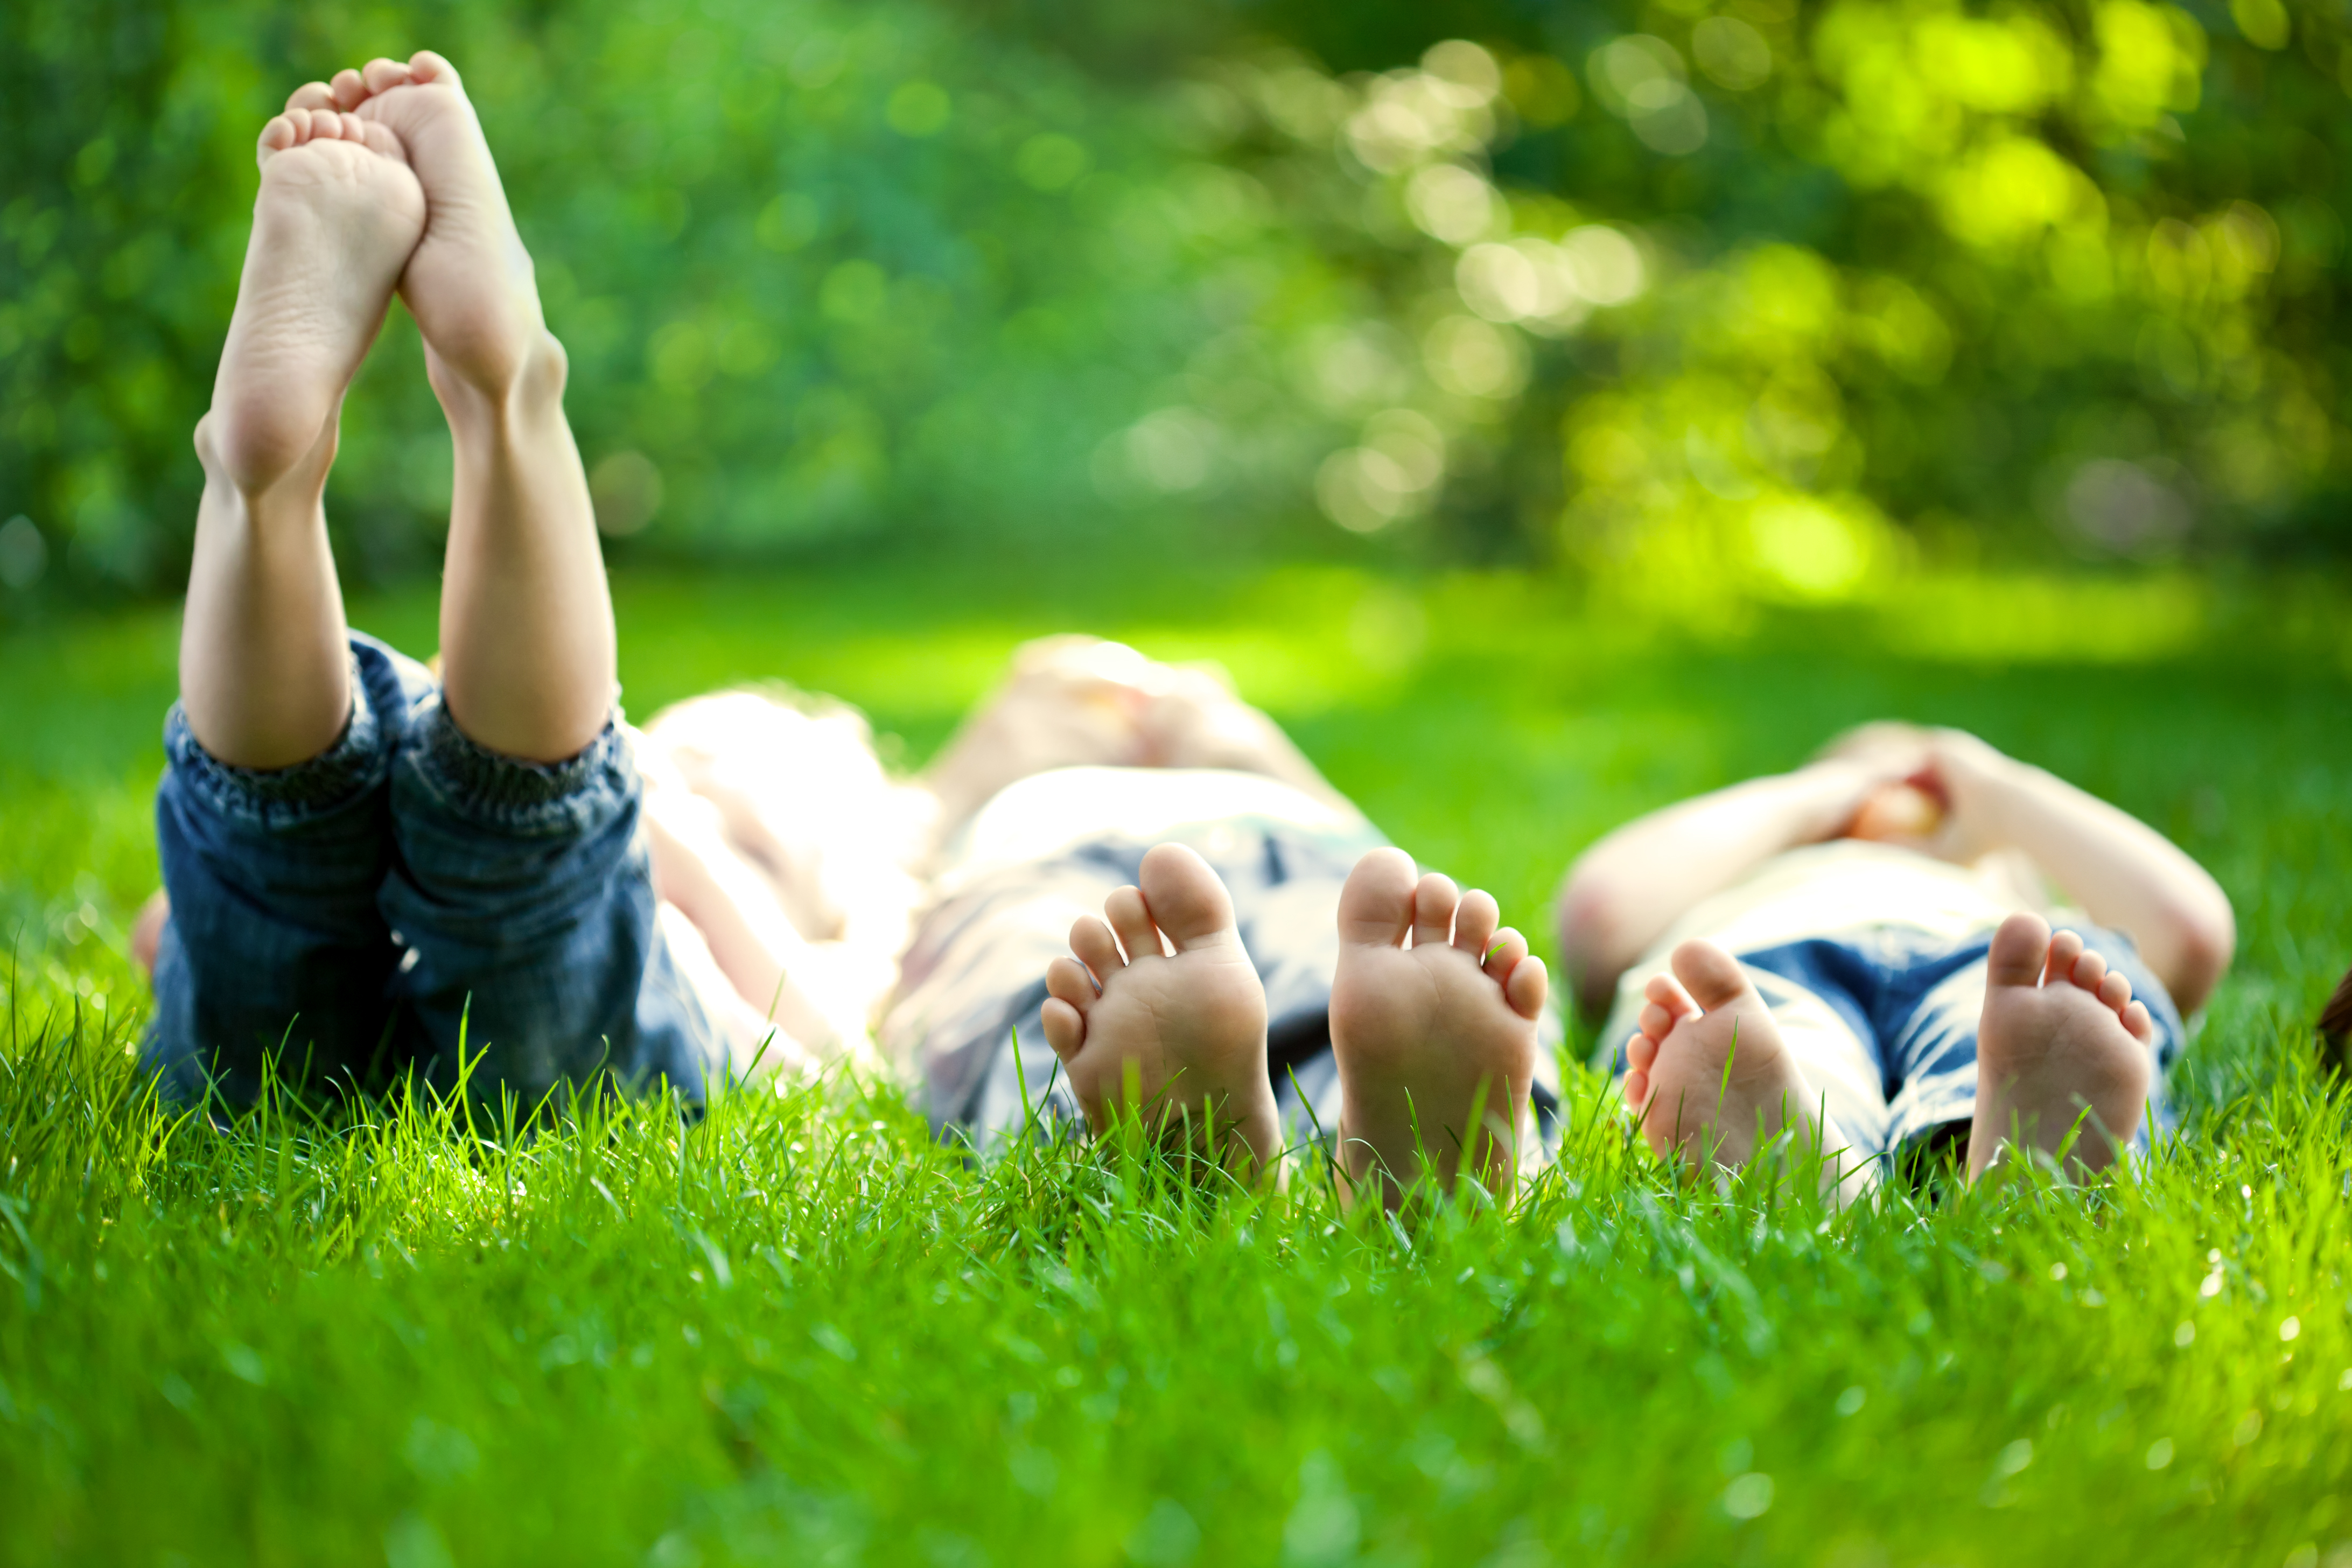 Group Of Hy Children Lying On Green Gr Outdoors In Spring Park